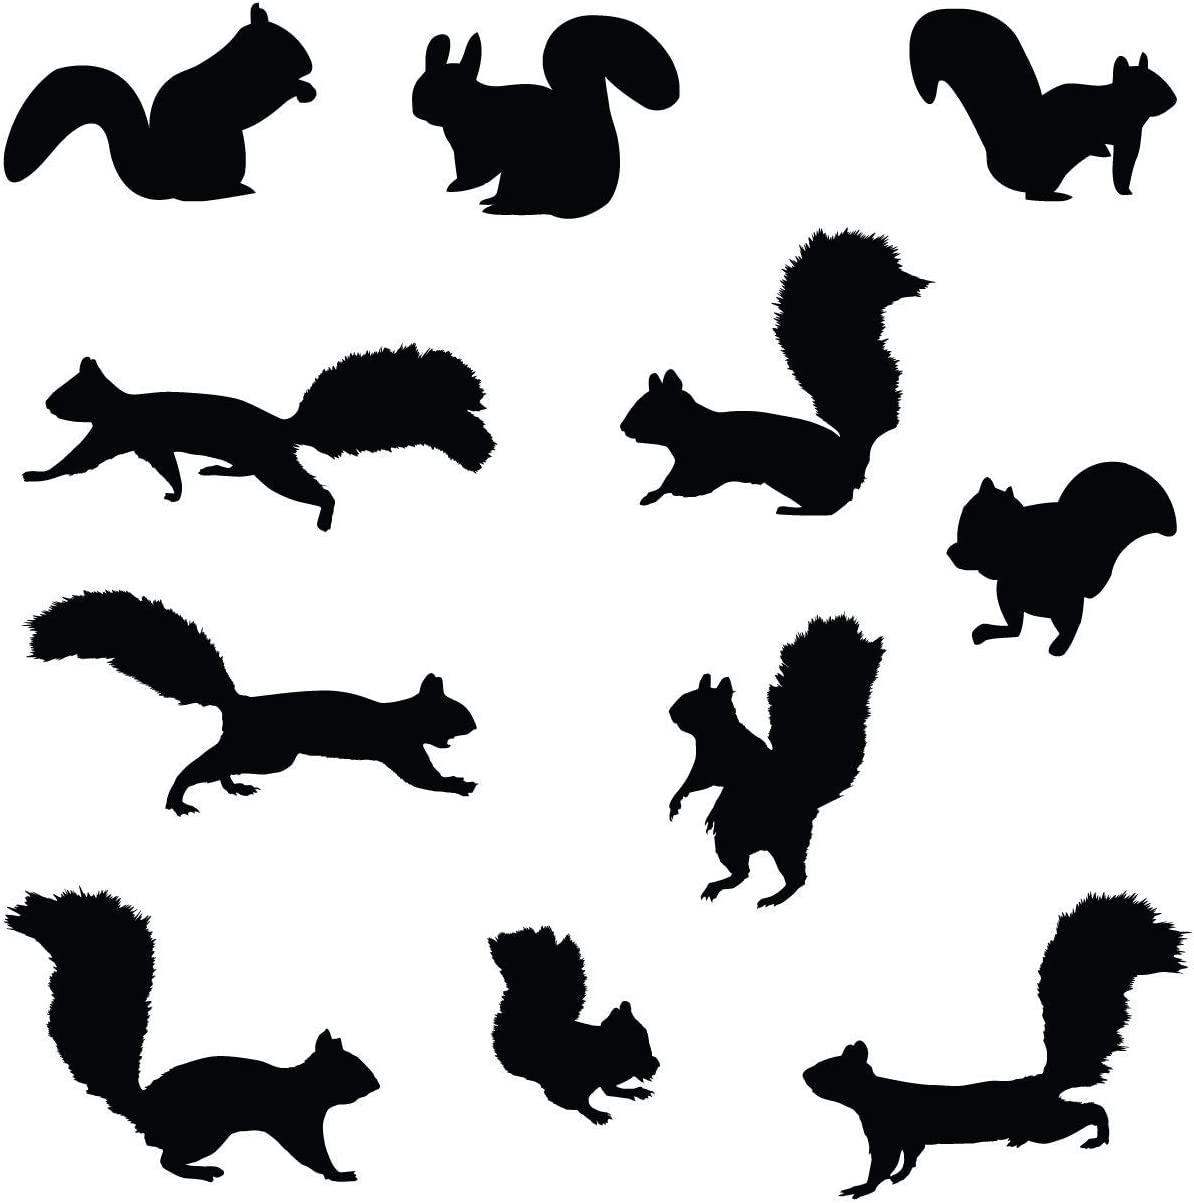 Innovative Stencils Squirrel Wall Decal Nursery Sticker Set Add to Tree Wall Decals Decor for Kids Rooms #1250 (12 Squirrel Decals Included) (Matte Black)